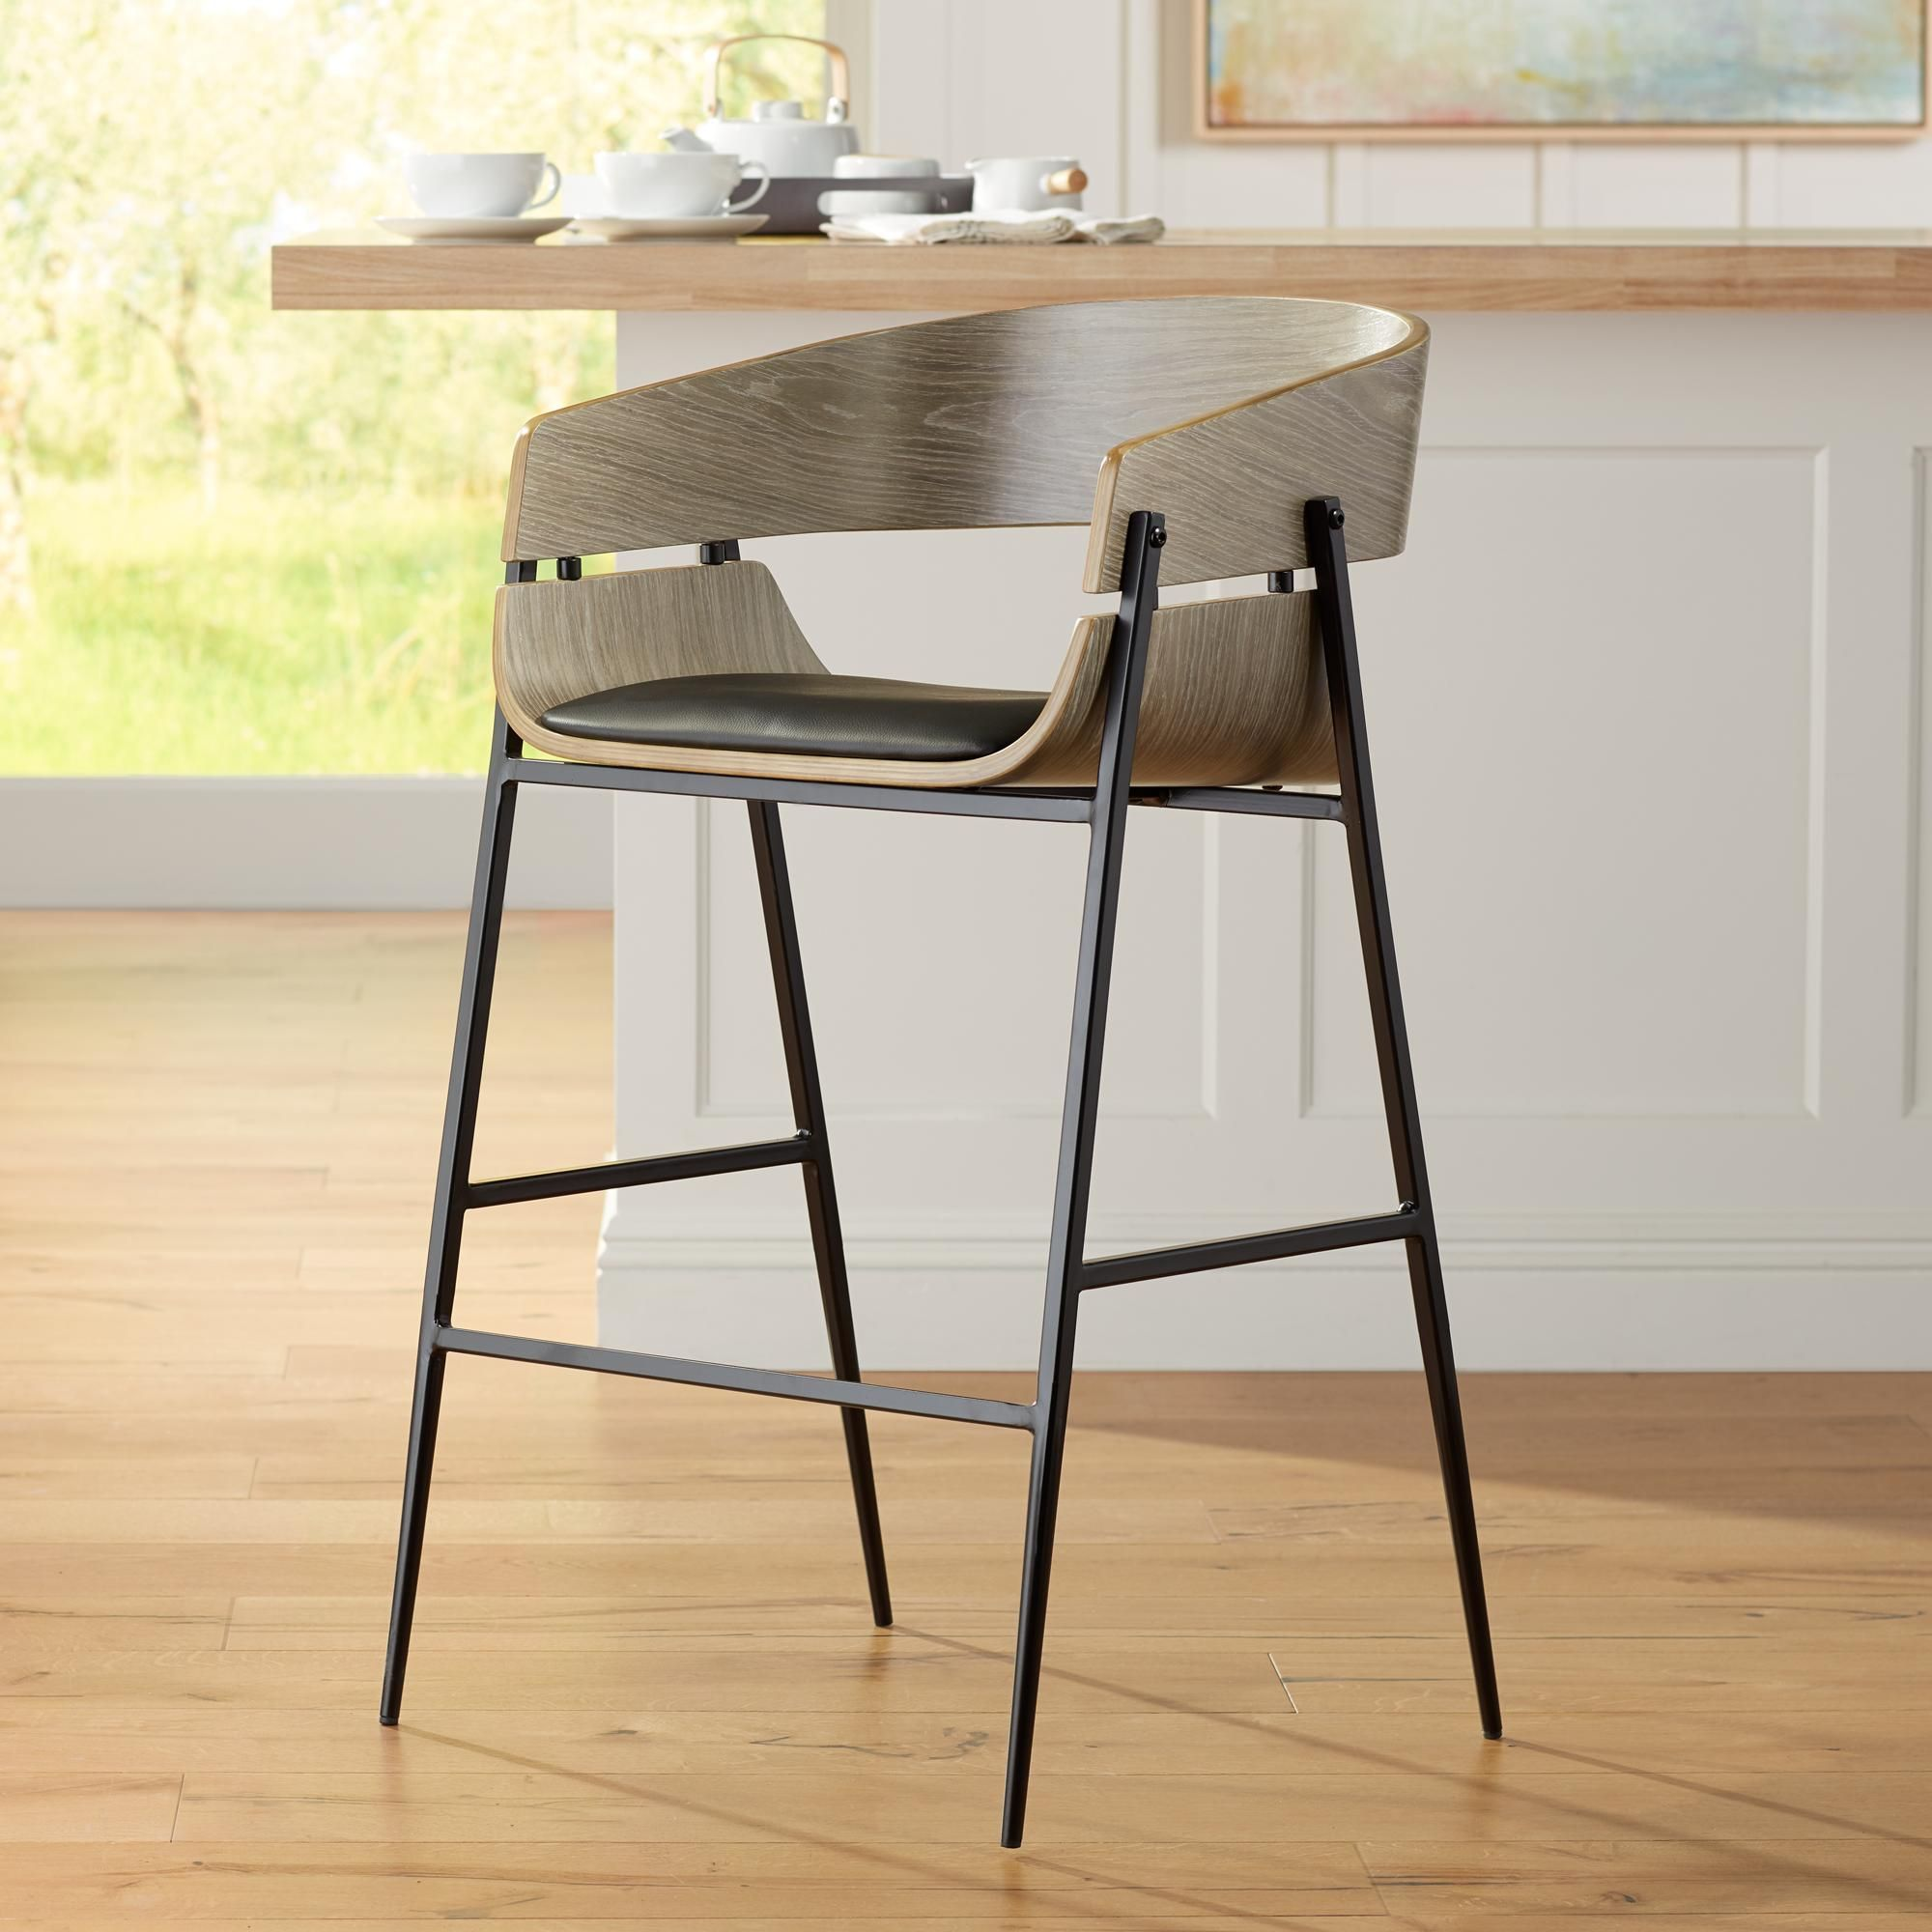 Hendrick 25 And One Quarter Inch Gray Counter Stool Set Of 2 In 2020 Modern Counter Stools Counter Stools